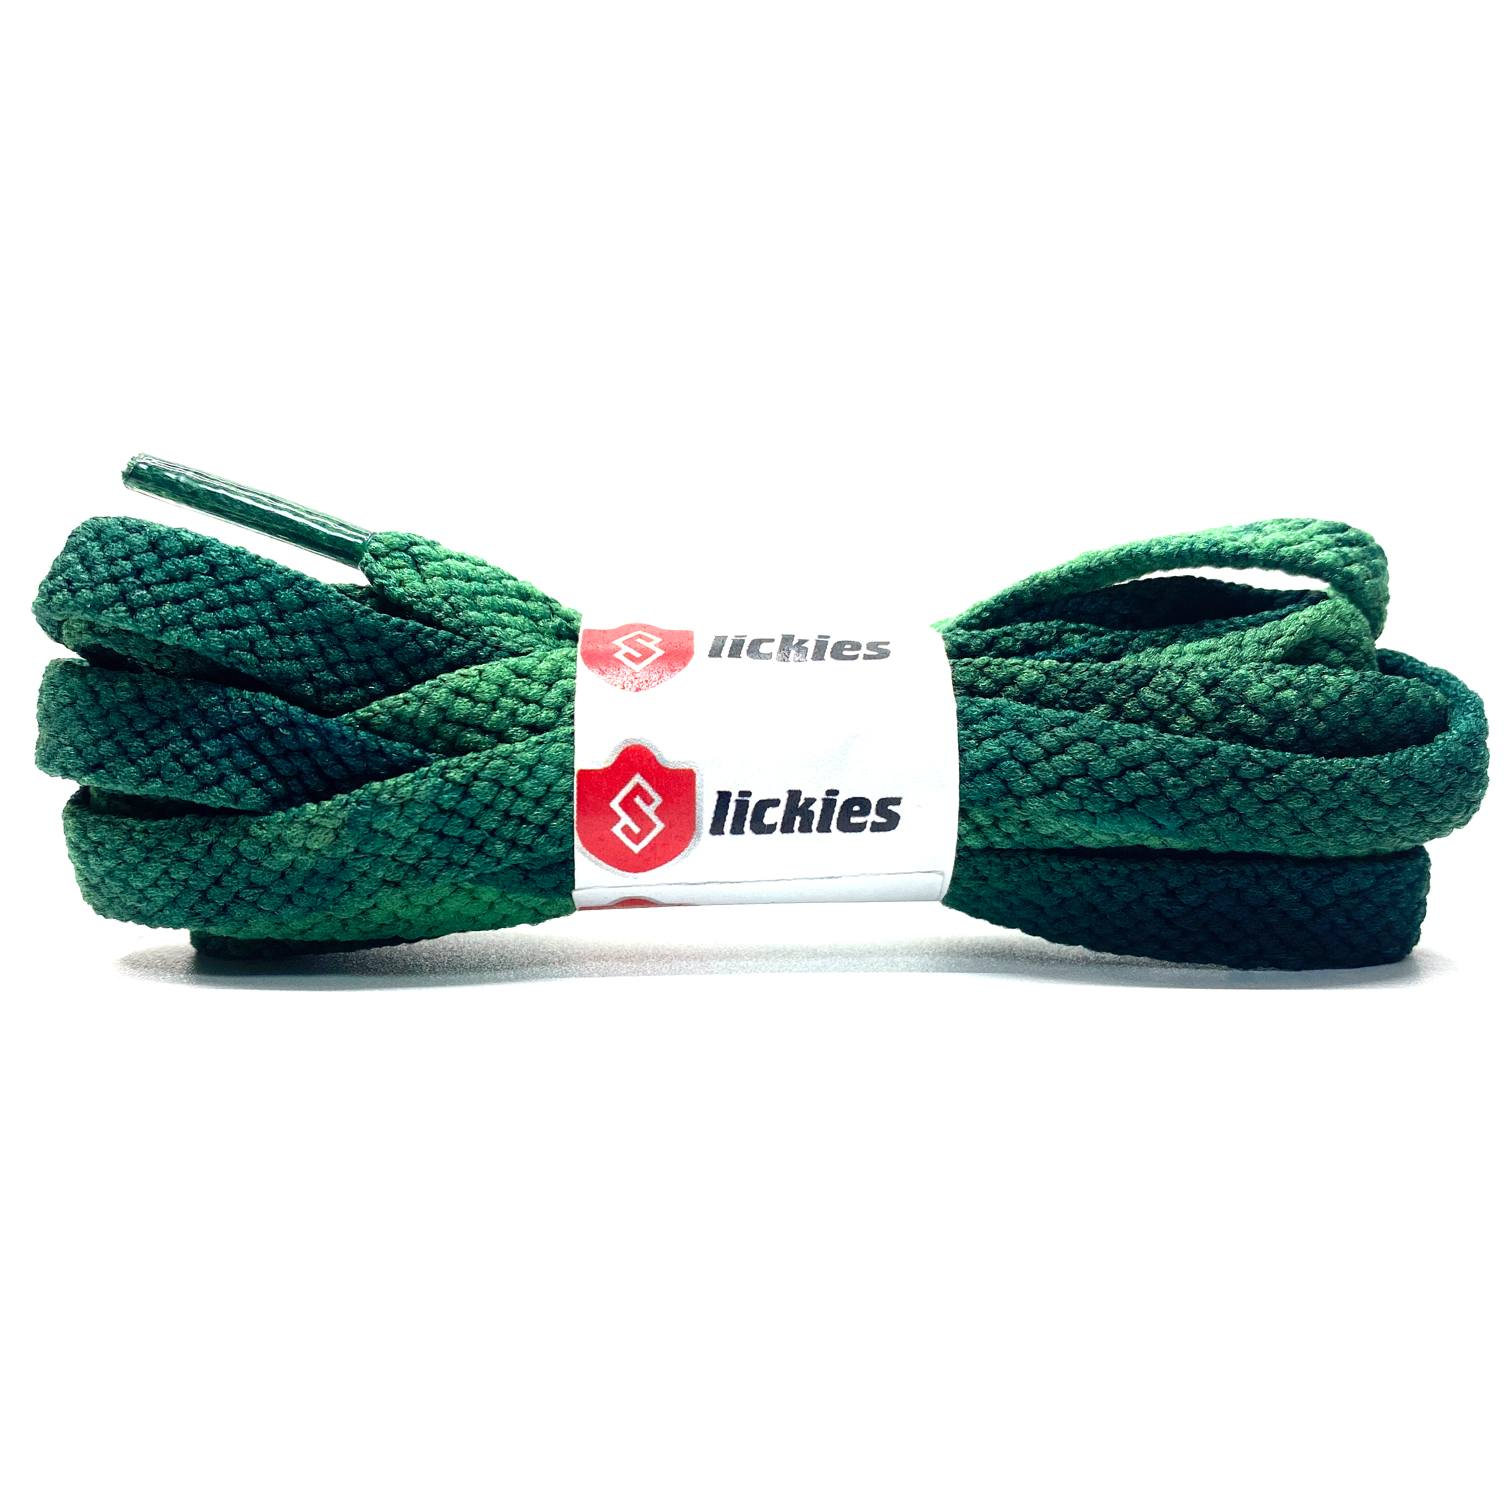 Tie Dye Flat Laces - Vintage Faded Green For Air Jordan 1